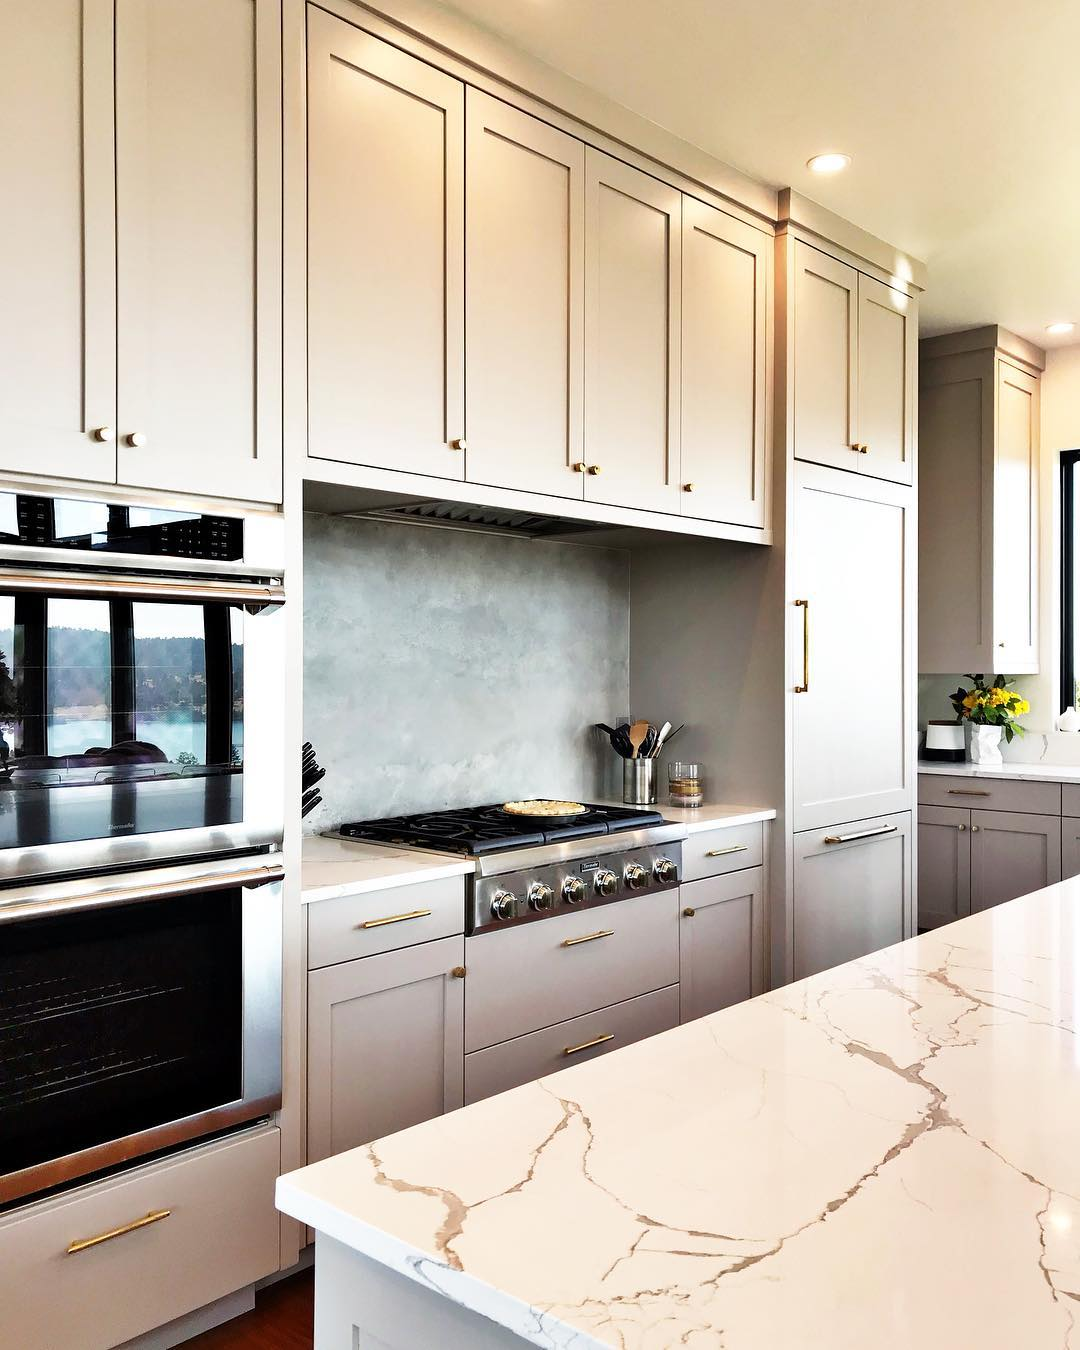 It's a contender for best kitchen...no doubt!! whitefish custom home builder